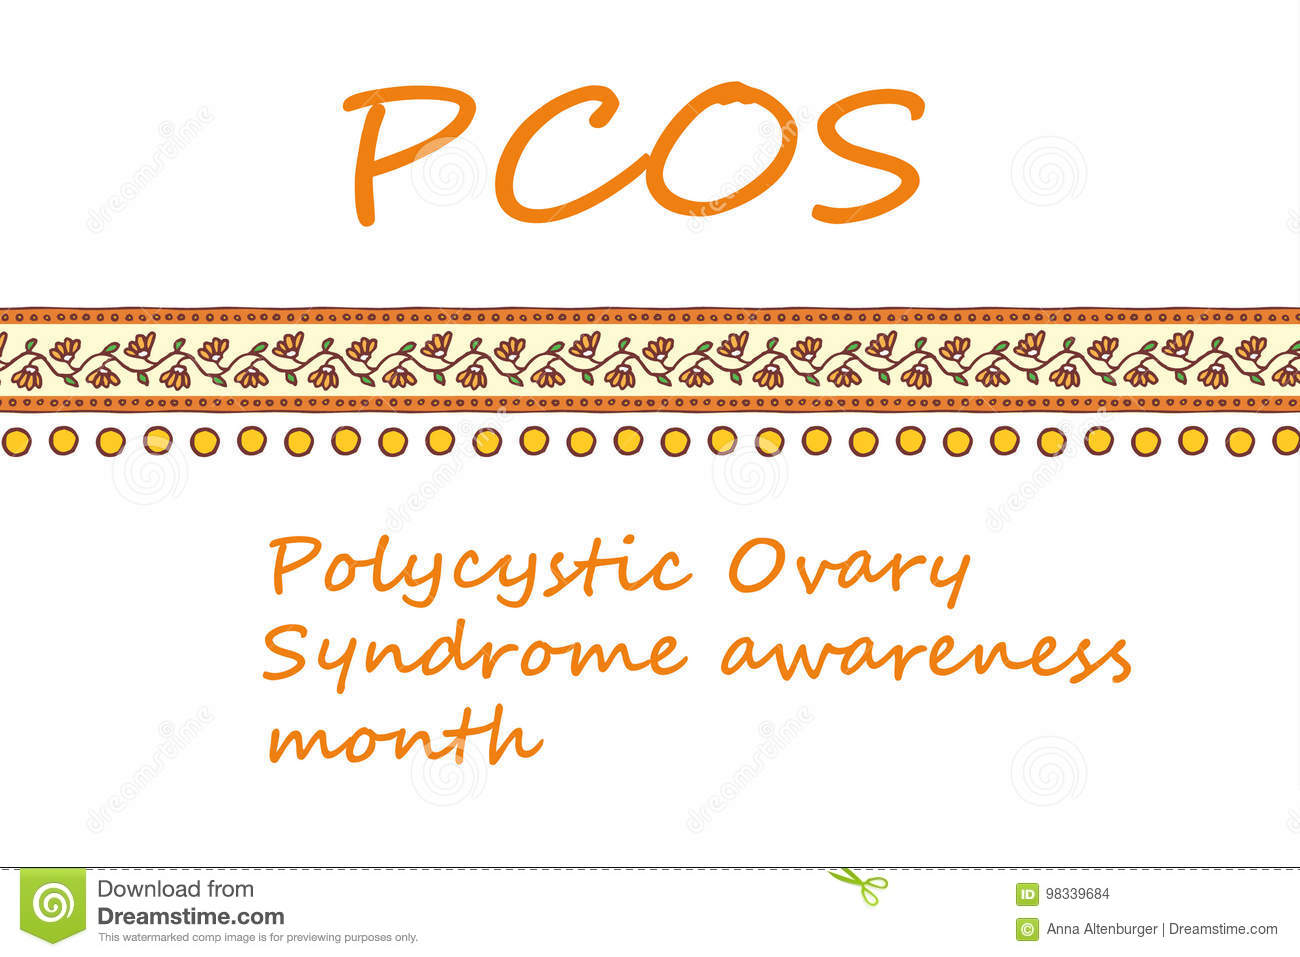 Polycystic ovary syndrome awareness month